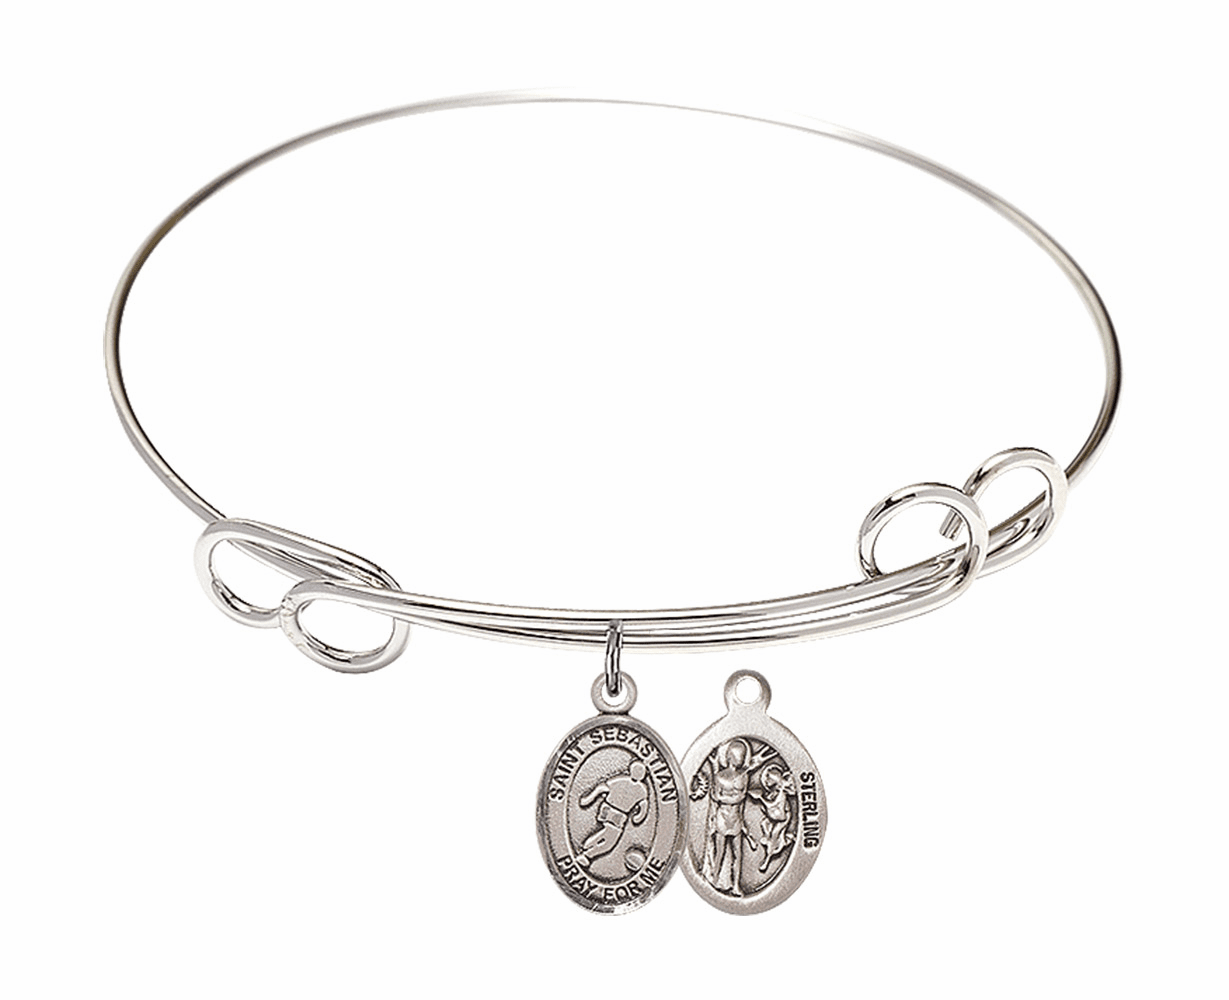 Round Loop St Sebastian Soccer Bangle Charm Bracelet by Bliss